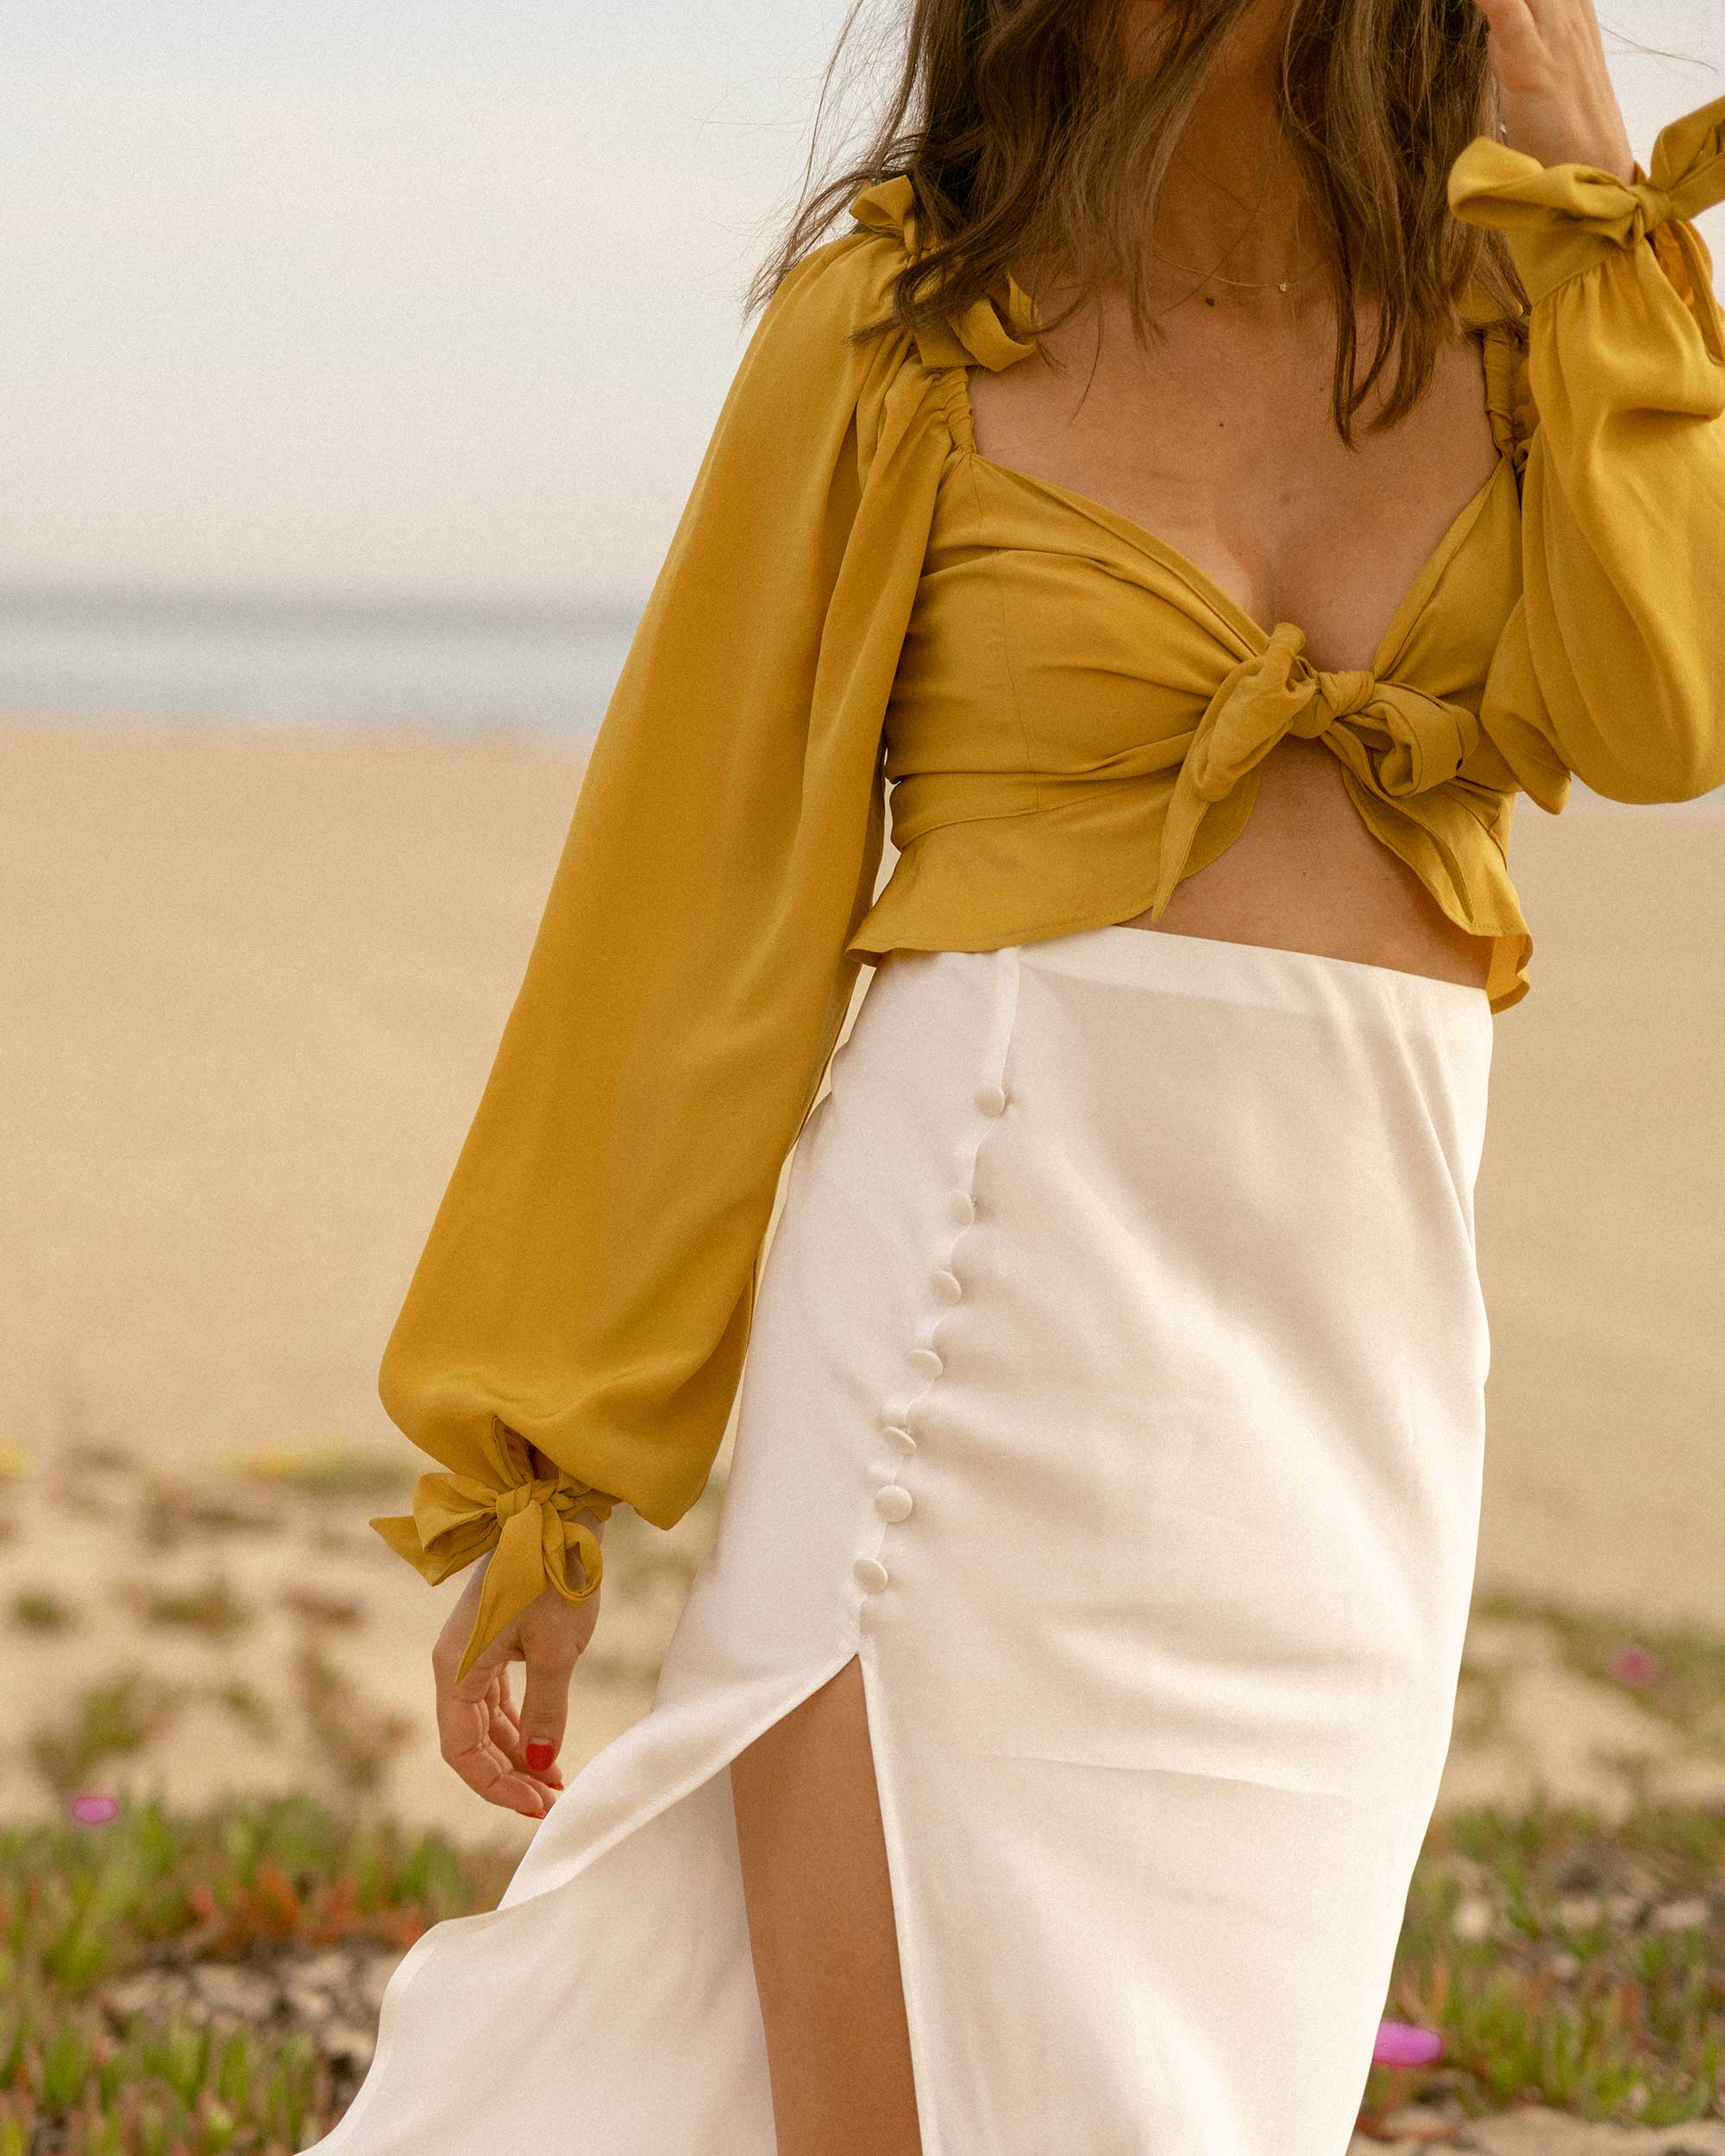 Click to shop outfit + more photos! Sarah Butler of Sarah Styles Seattle wears Yellow bell sleeve crop top and side slit silk midi skirt in Newport Beach, California for the perfect summer outfit | @sarahchristine -4.jpg